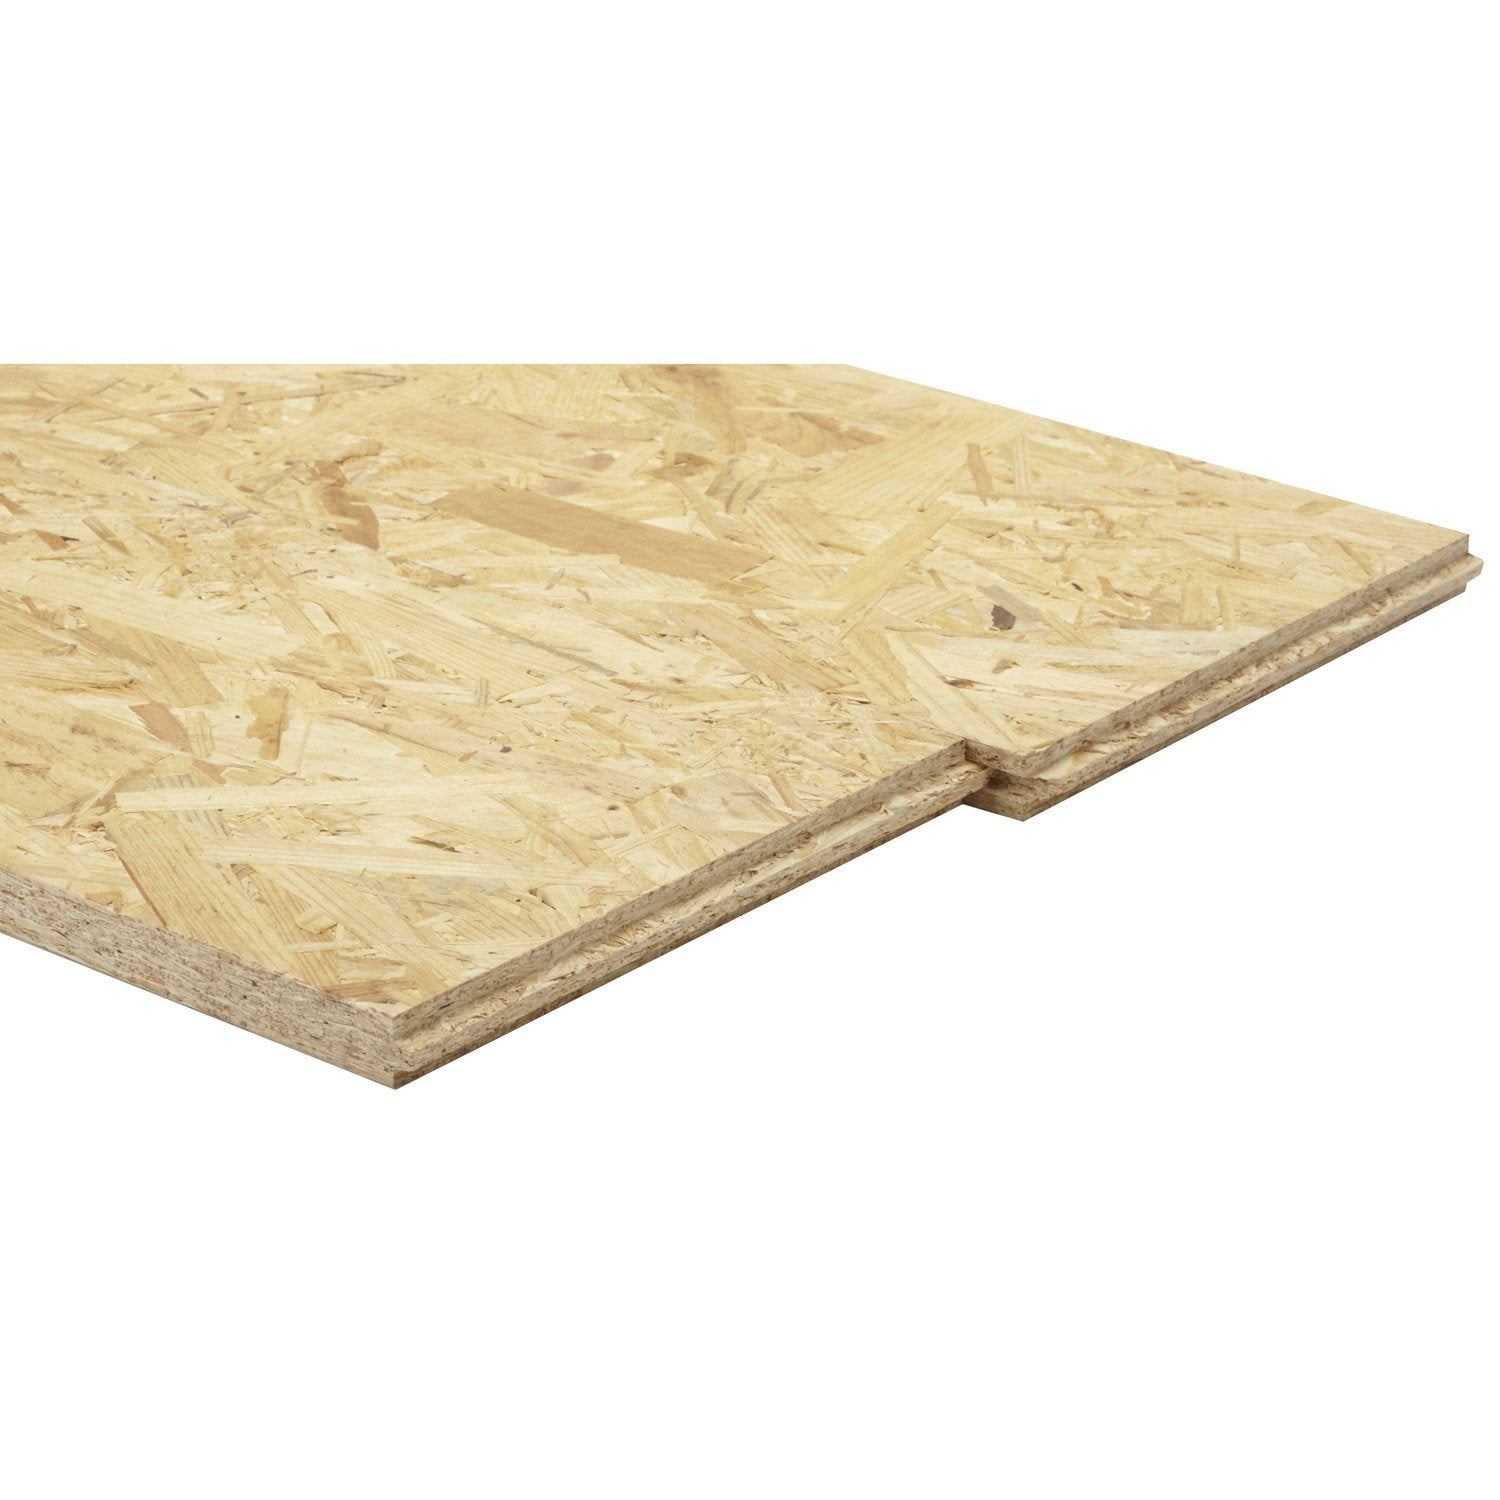 Dalle osb 3 3 plis pic a naturel mm x cm leroy merlin - Leroy merlin dalle clipsable ...